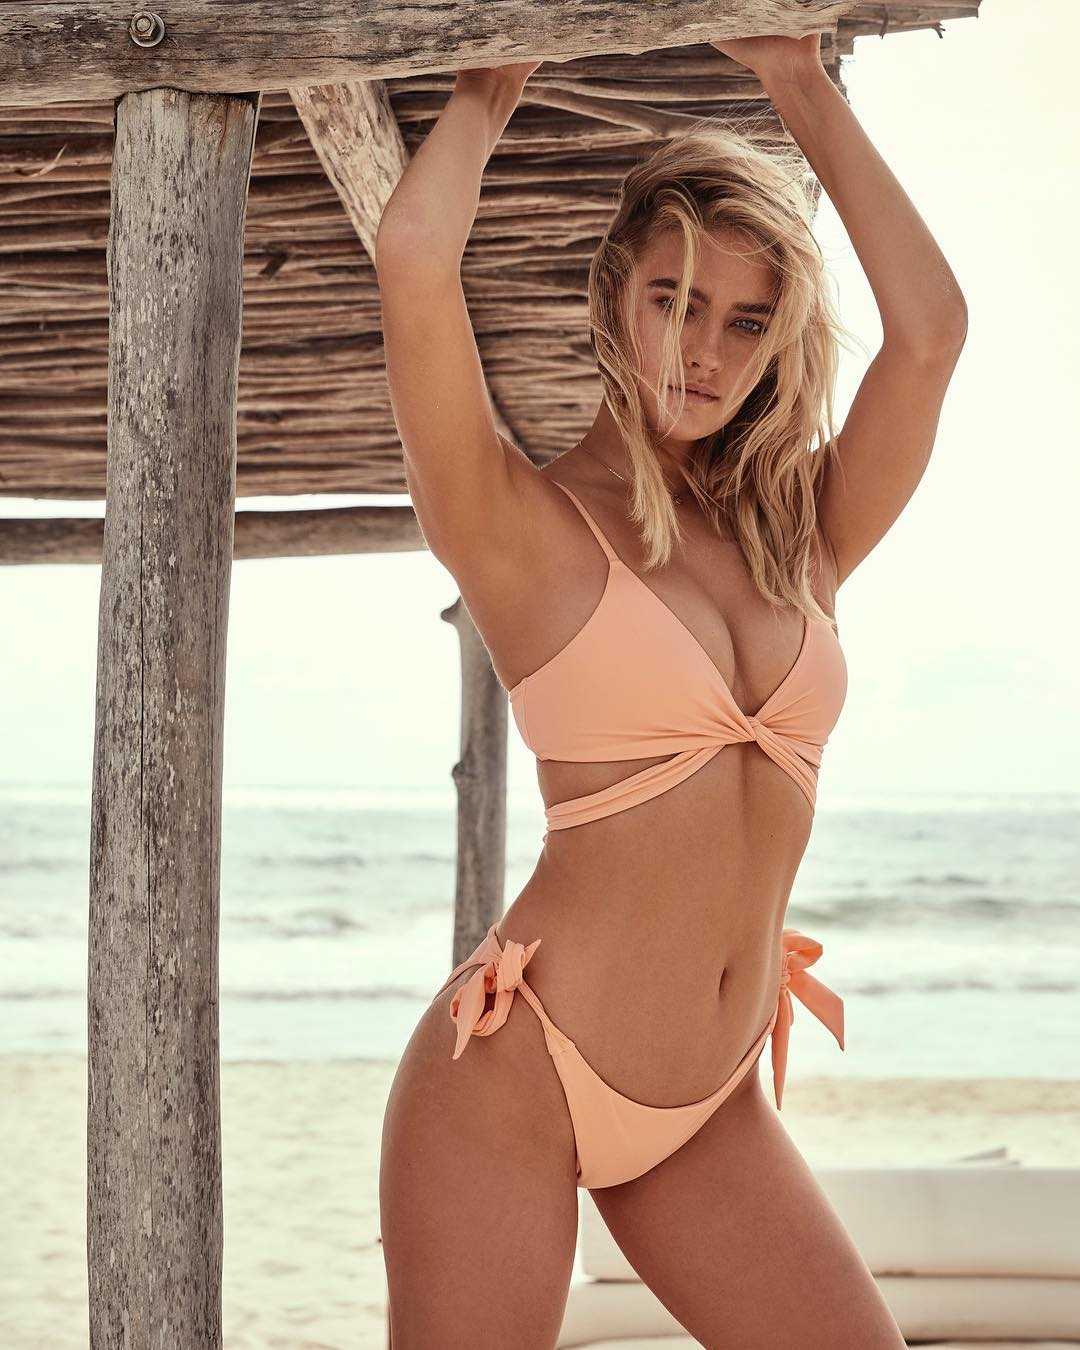 2019 Tess Jantschek naked (95 photo), Topless, Sideboobs, Twitter, swimsuit 2019